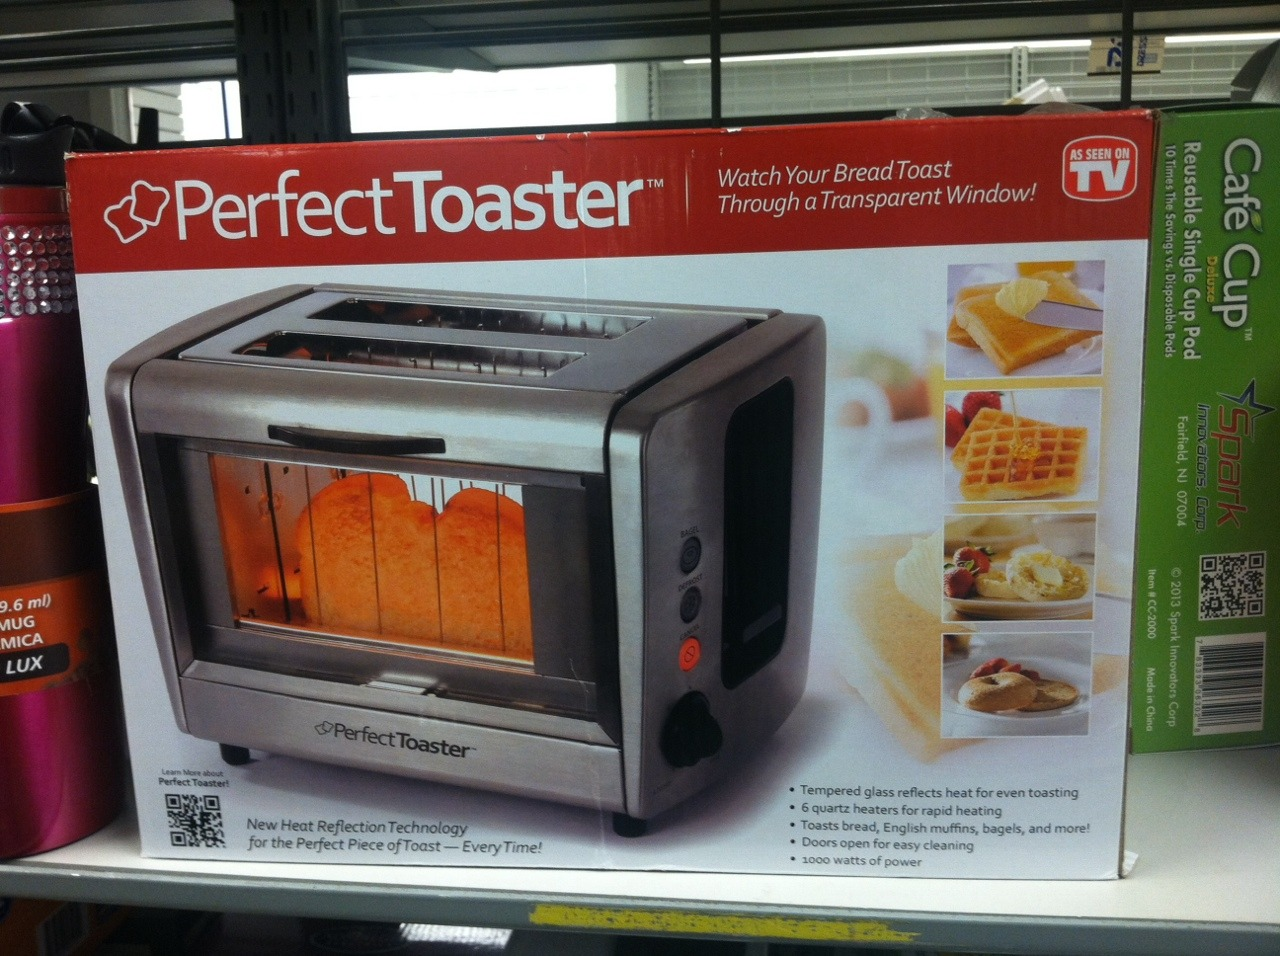 "teaforyourginaa: "" dynastylnoire: "" sounddesignerjeans: "" strangelypensieve: "" trouserweasel: "" trouserweasel: "" LOOK THEY ACTUALLY DO HAVE TOASTERS WITH LITTLE WINDOWS SO YOU CAN WATCH YOUR FOOD GET TOASTED "" it looks like toast jail "" They've been..."